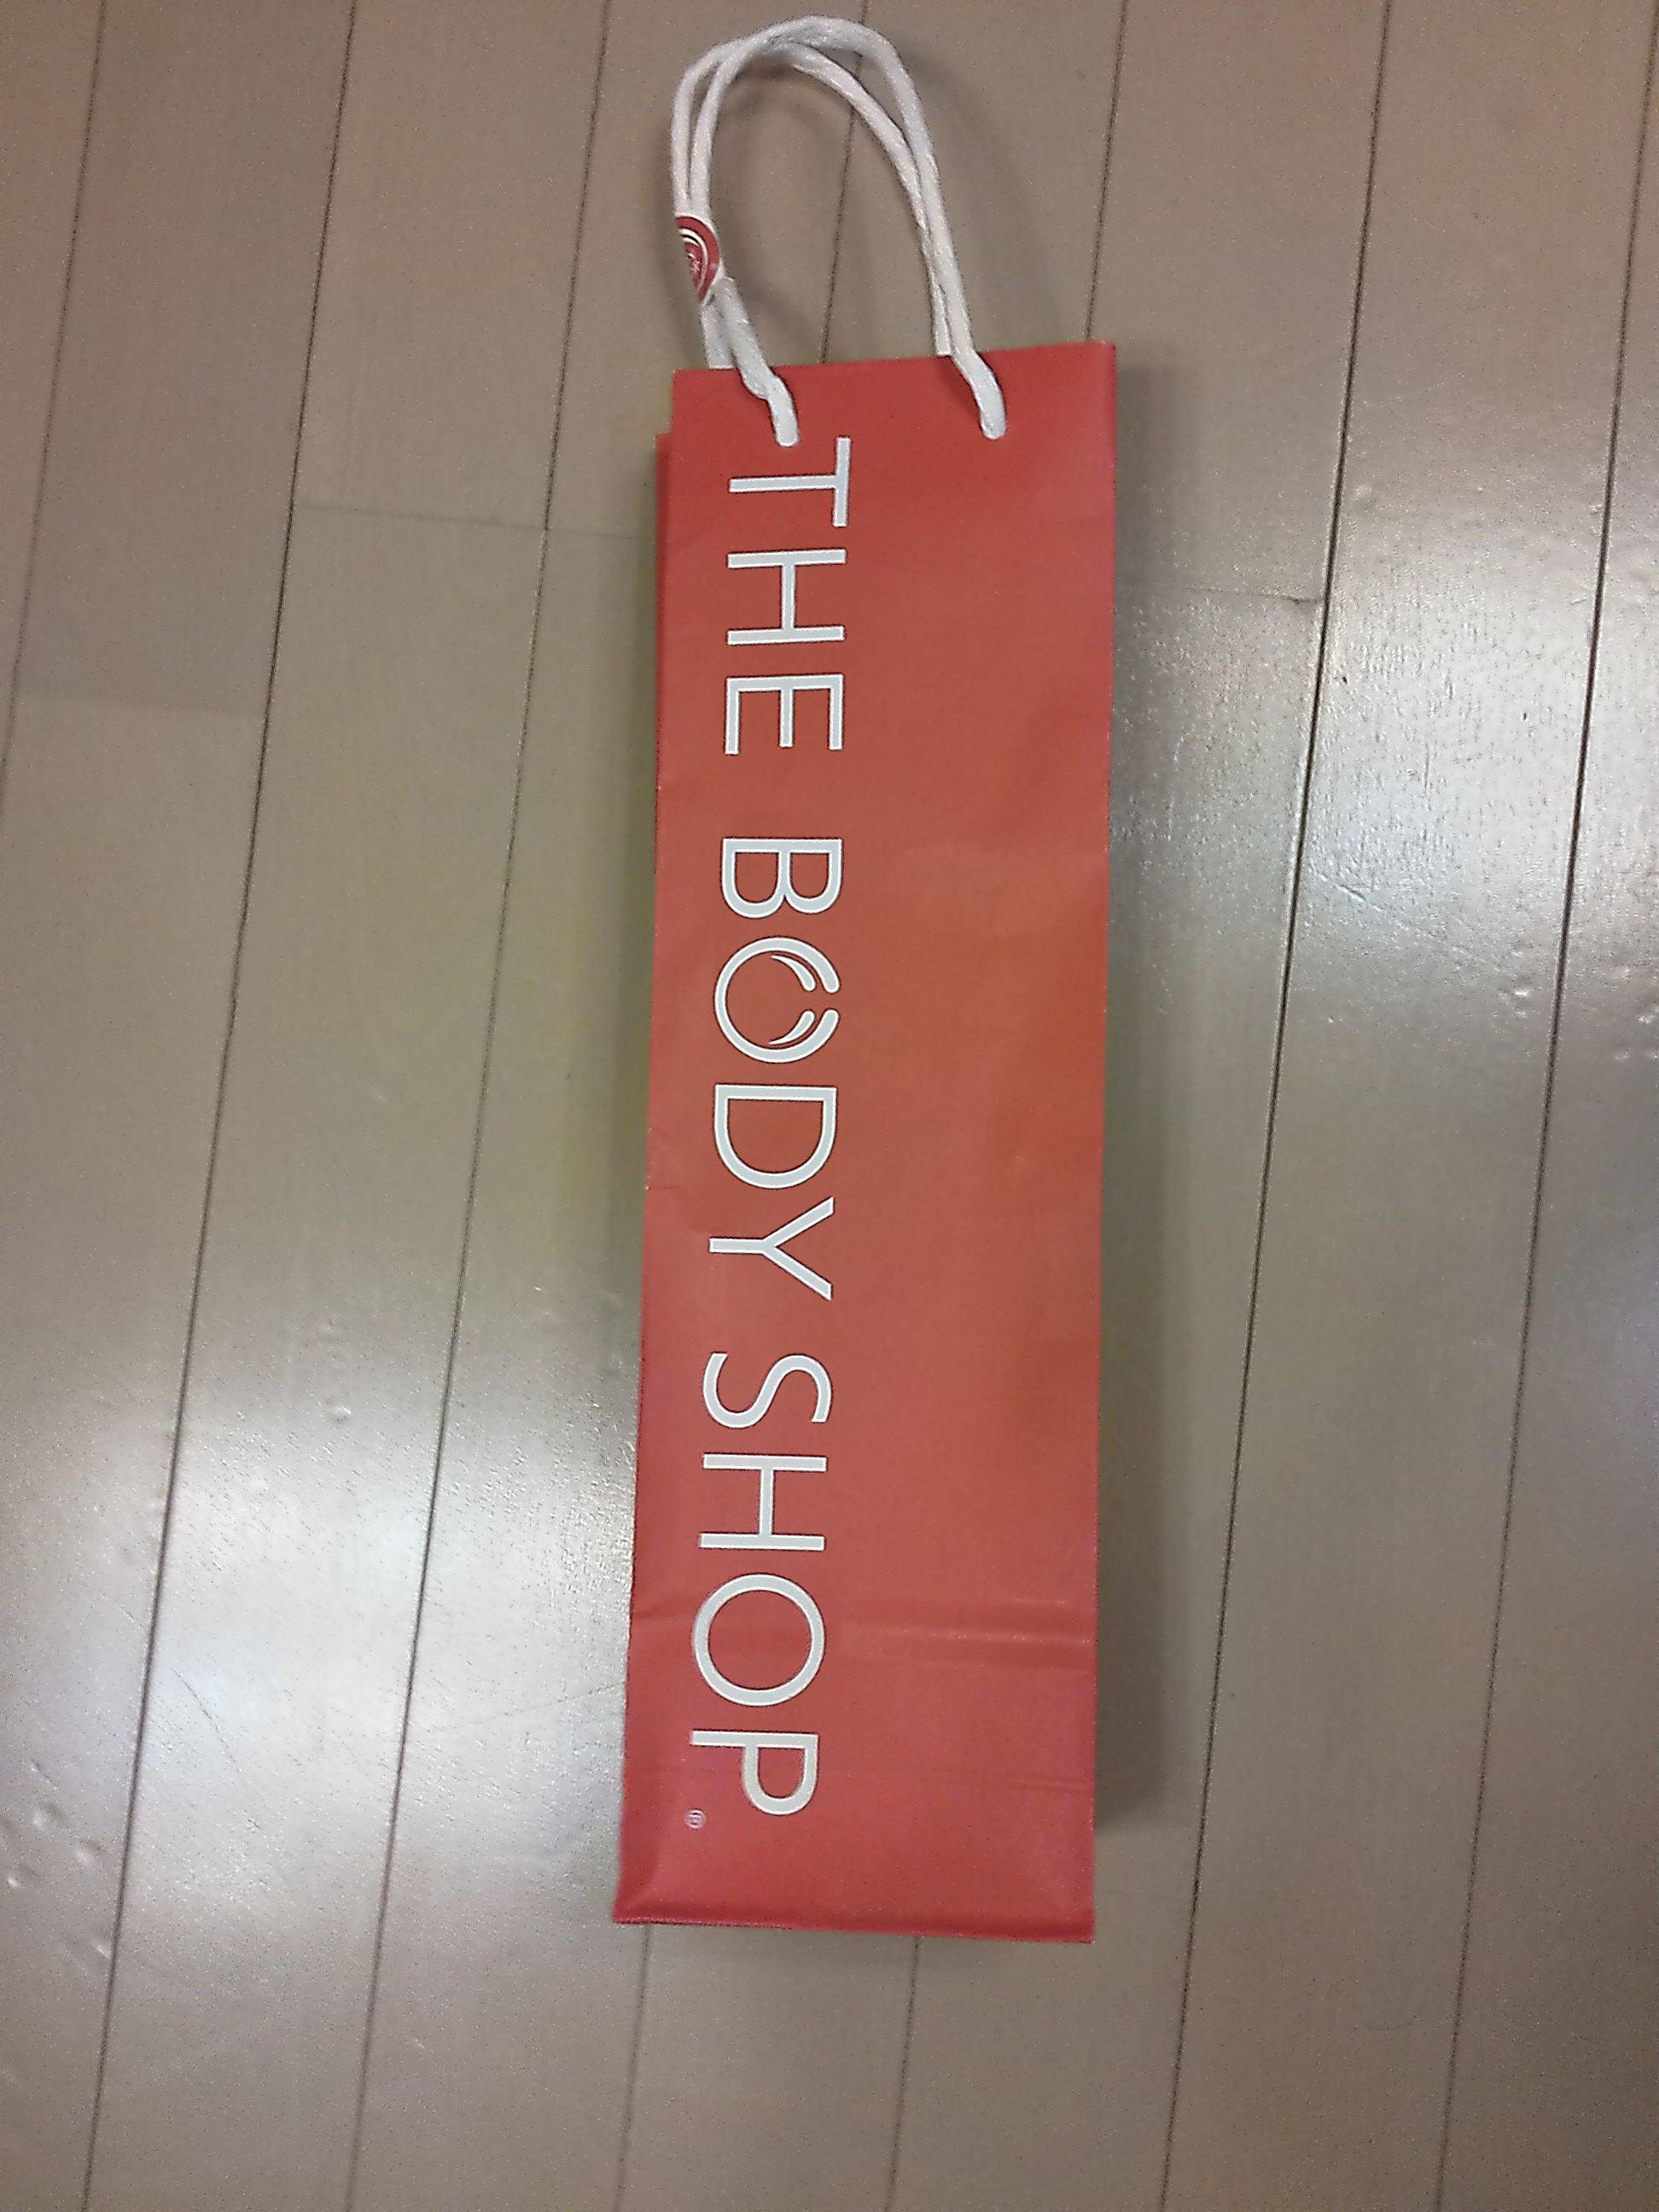 The Body Shopの赤い袋